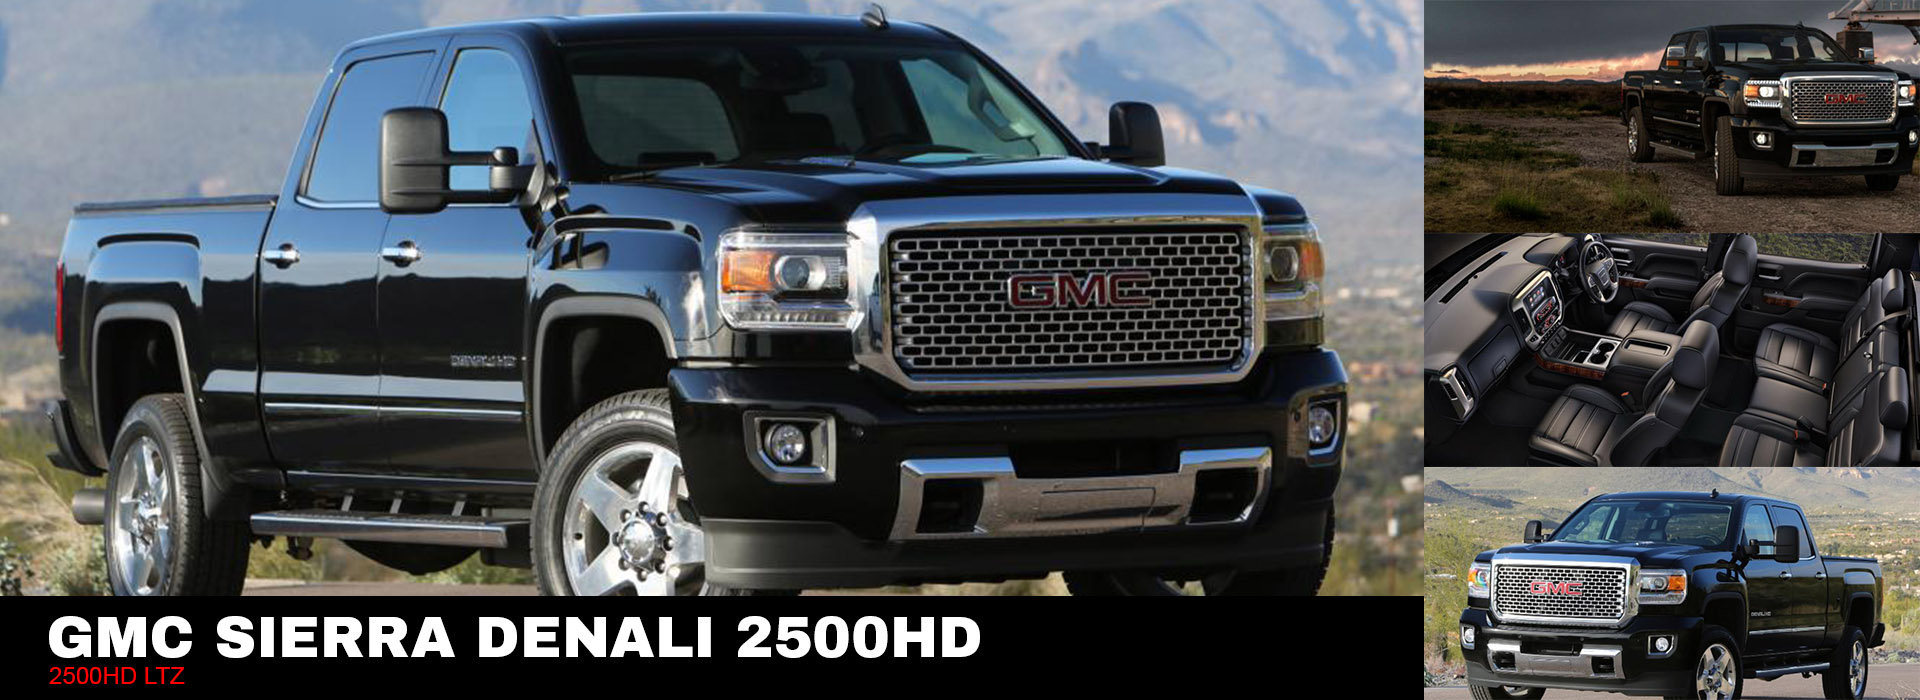 GMC Sierra Denali Trucks for sale